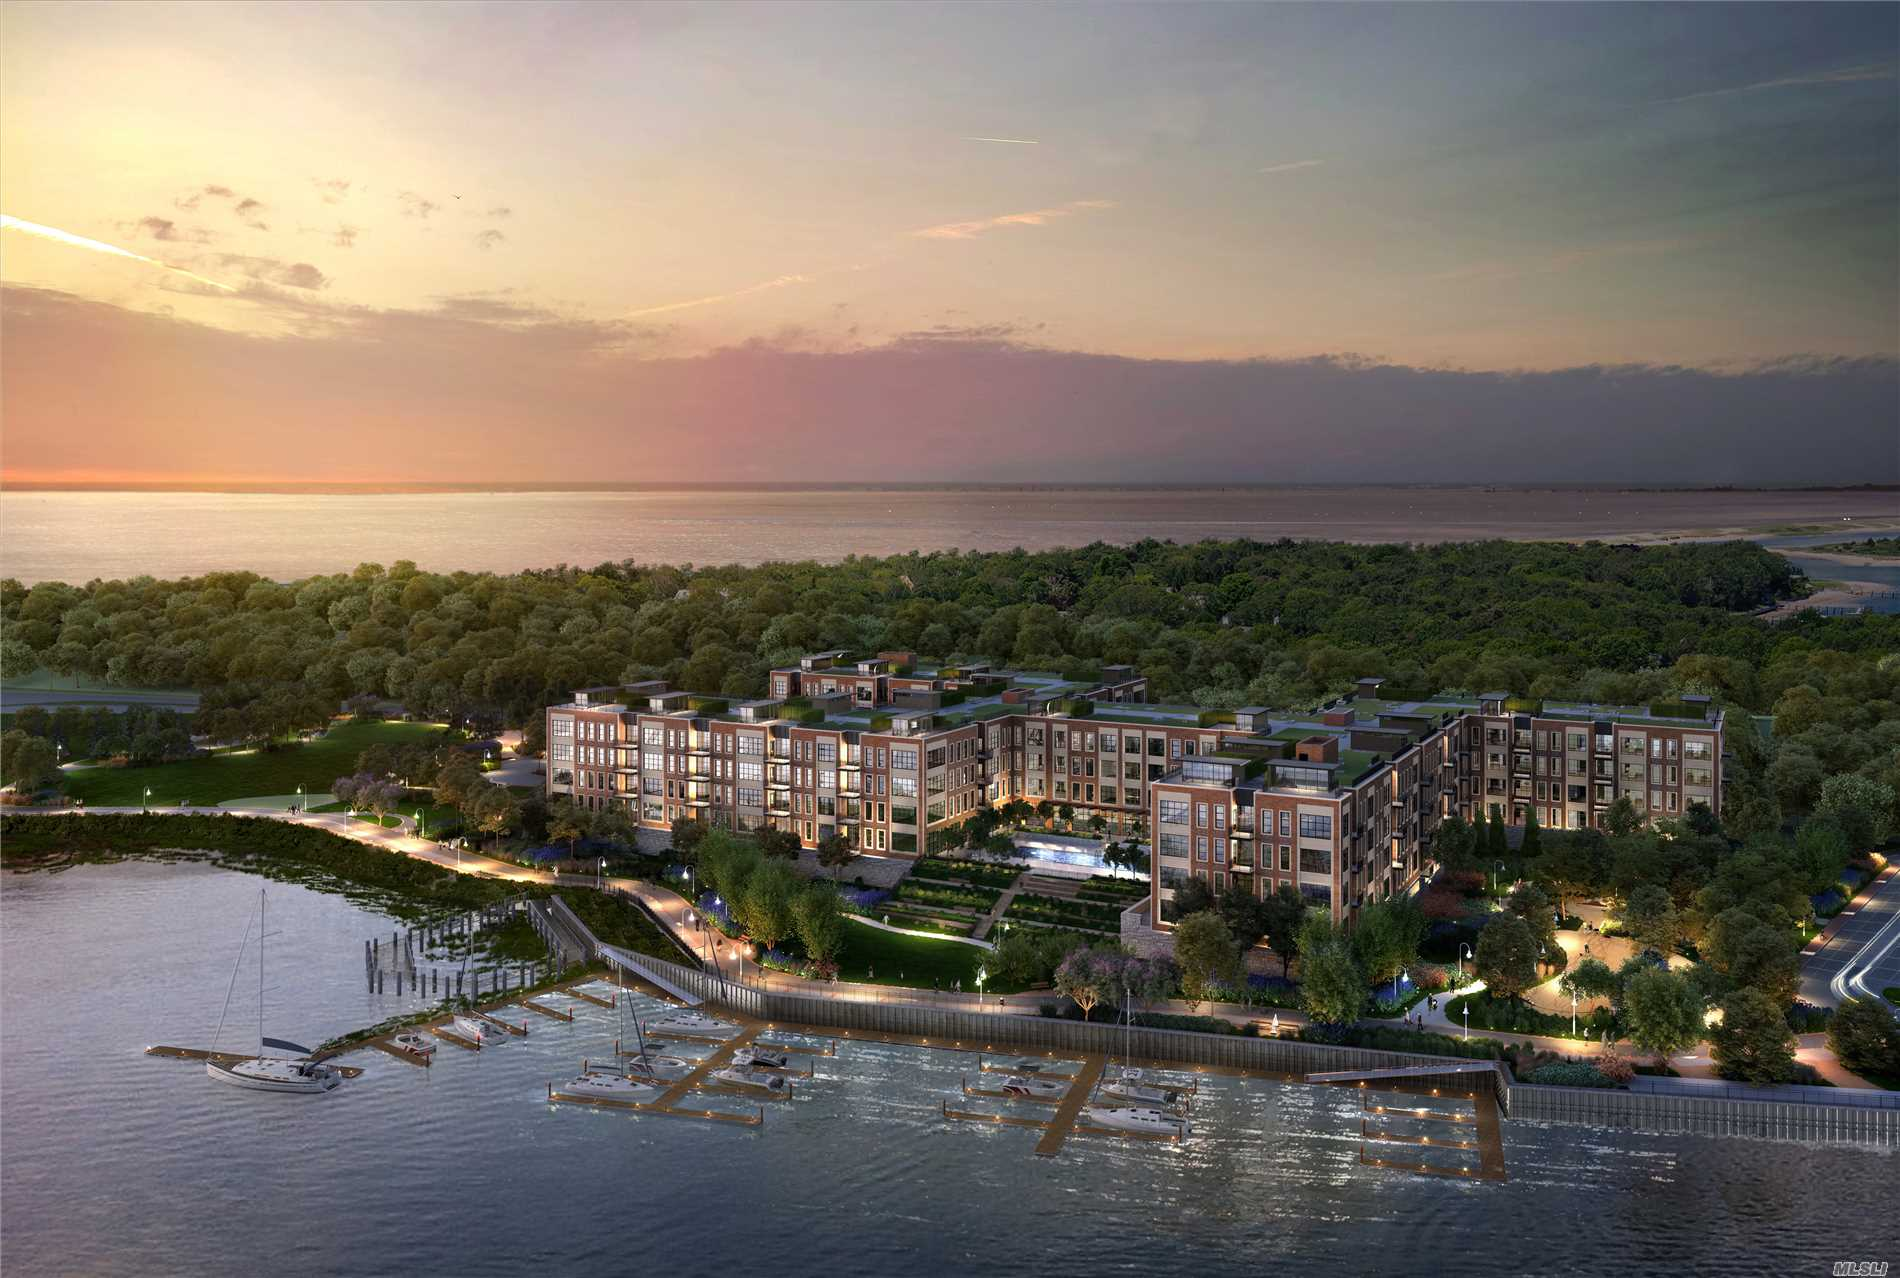 Property for sale at 100 Garvies Point Road # 1141, Glen Cove NY 11542, Glen Cove,  New York 11542